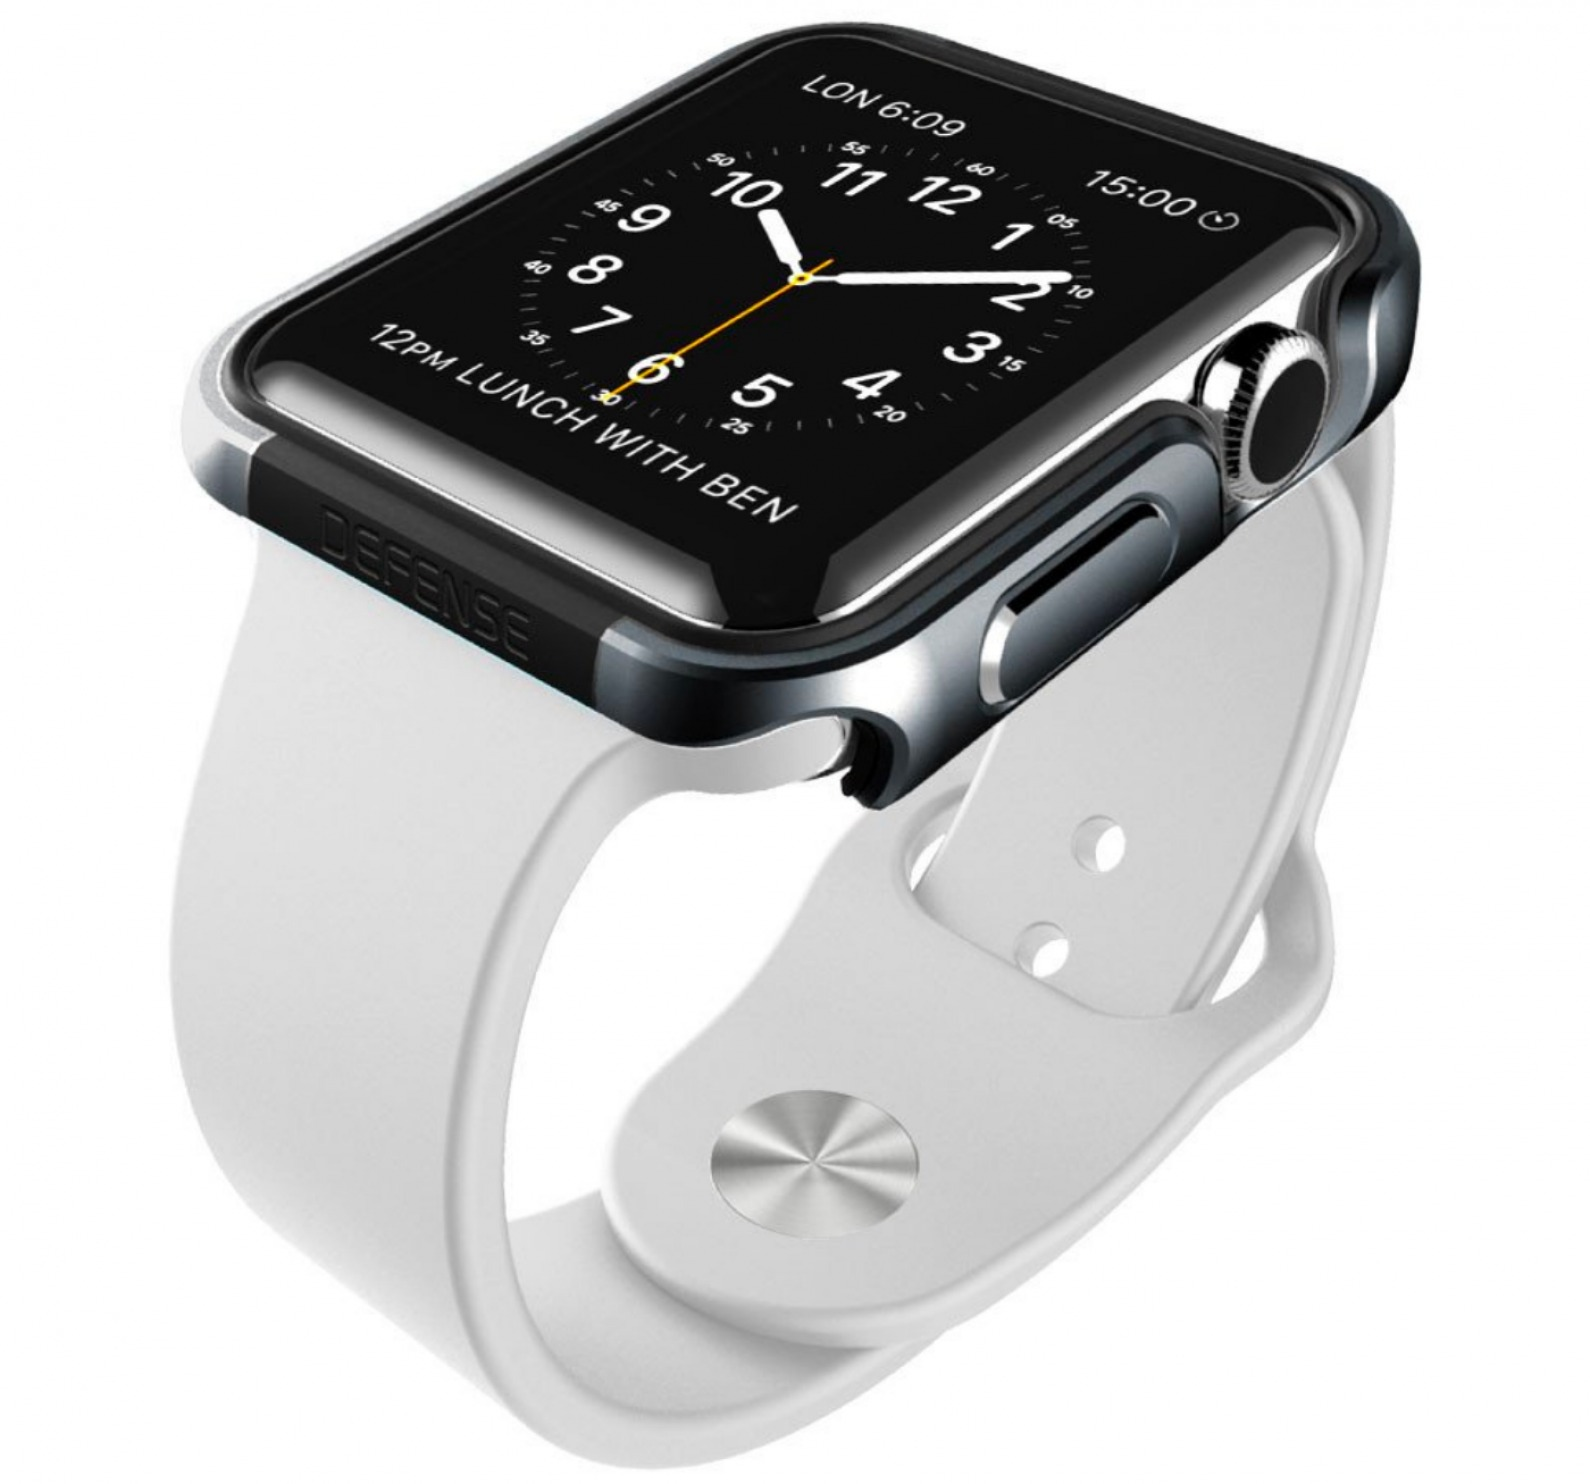 size 40 33a79 a9ce7 Hard on Your Apple Watch ? Check Out These 3 Best Watch Cases ...